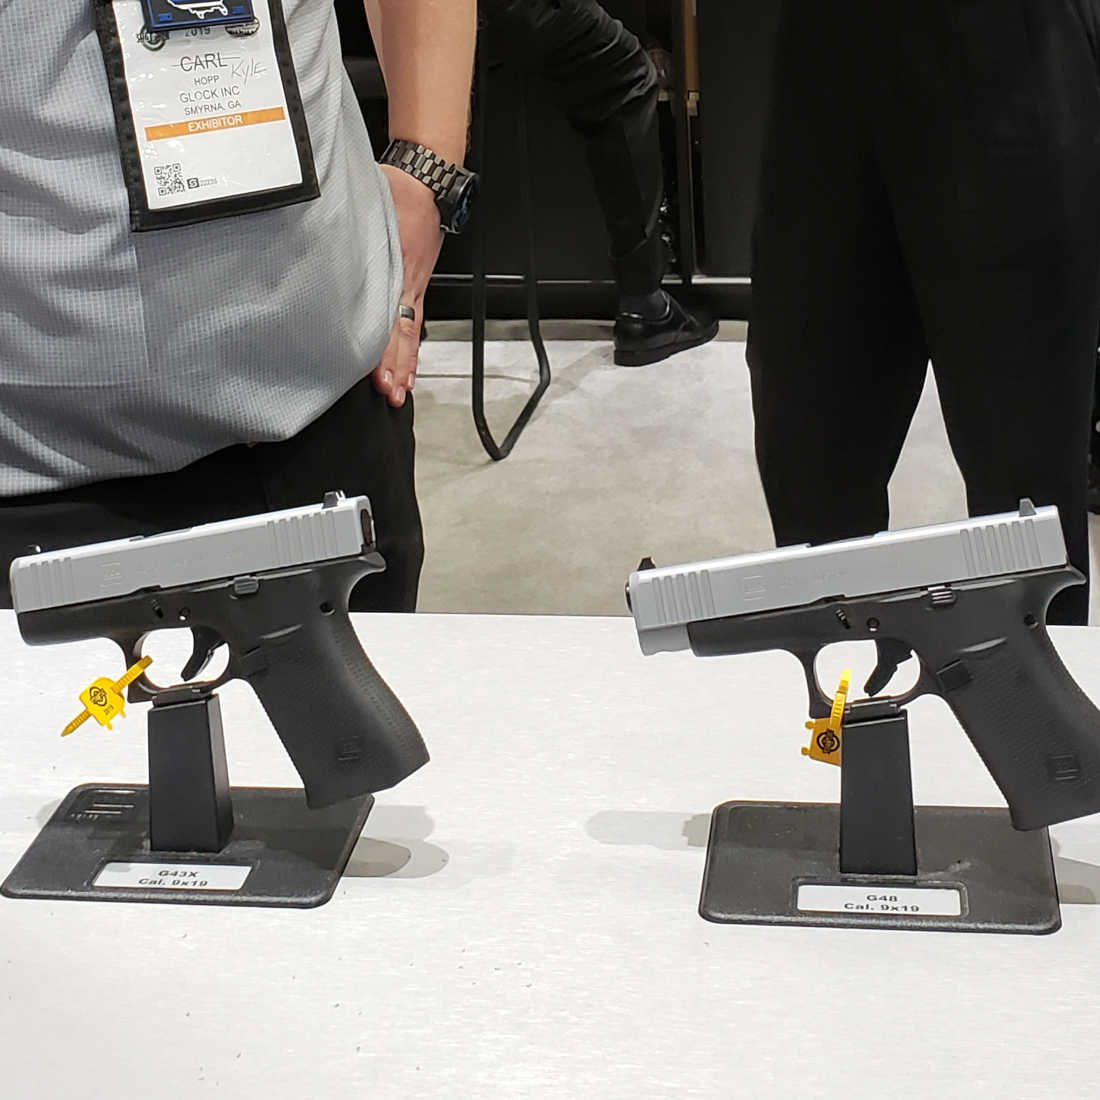 Report from SHOT Show: Glock's Newest Products